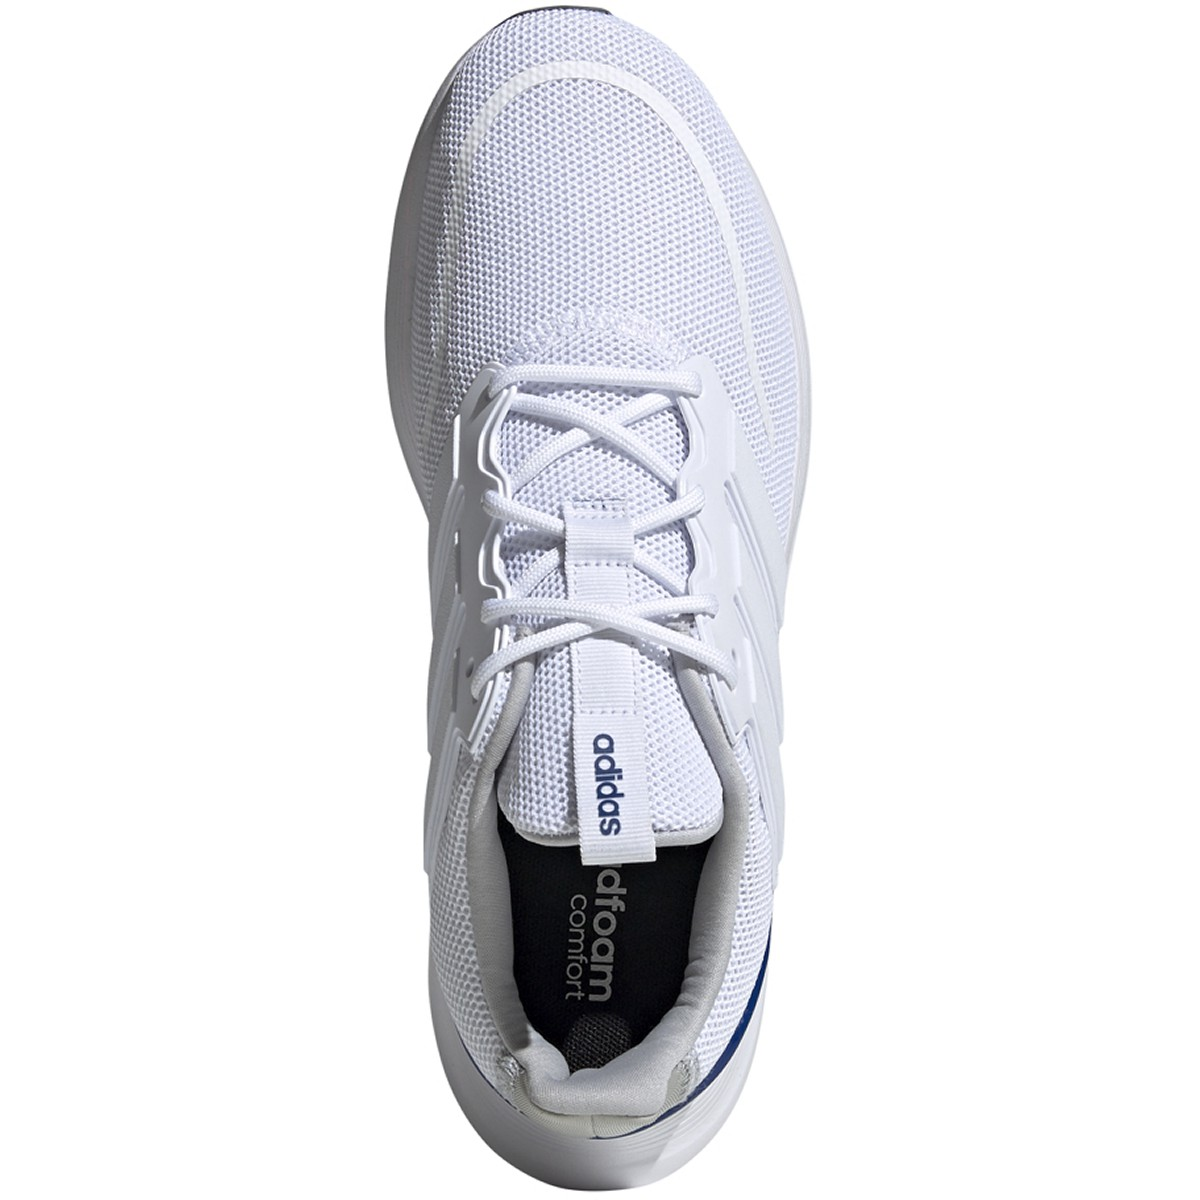 adidas Run Falcon F36208 Mens Running Trainers~SIZE 6 ONLY NOW £19.99